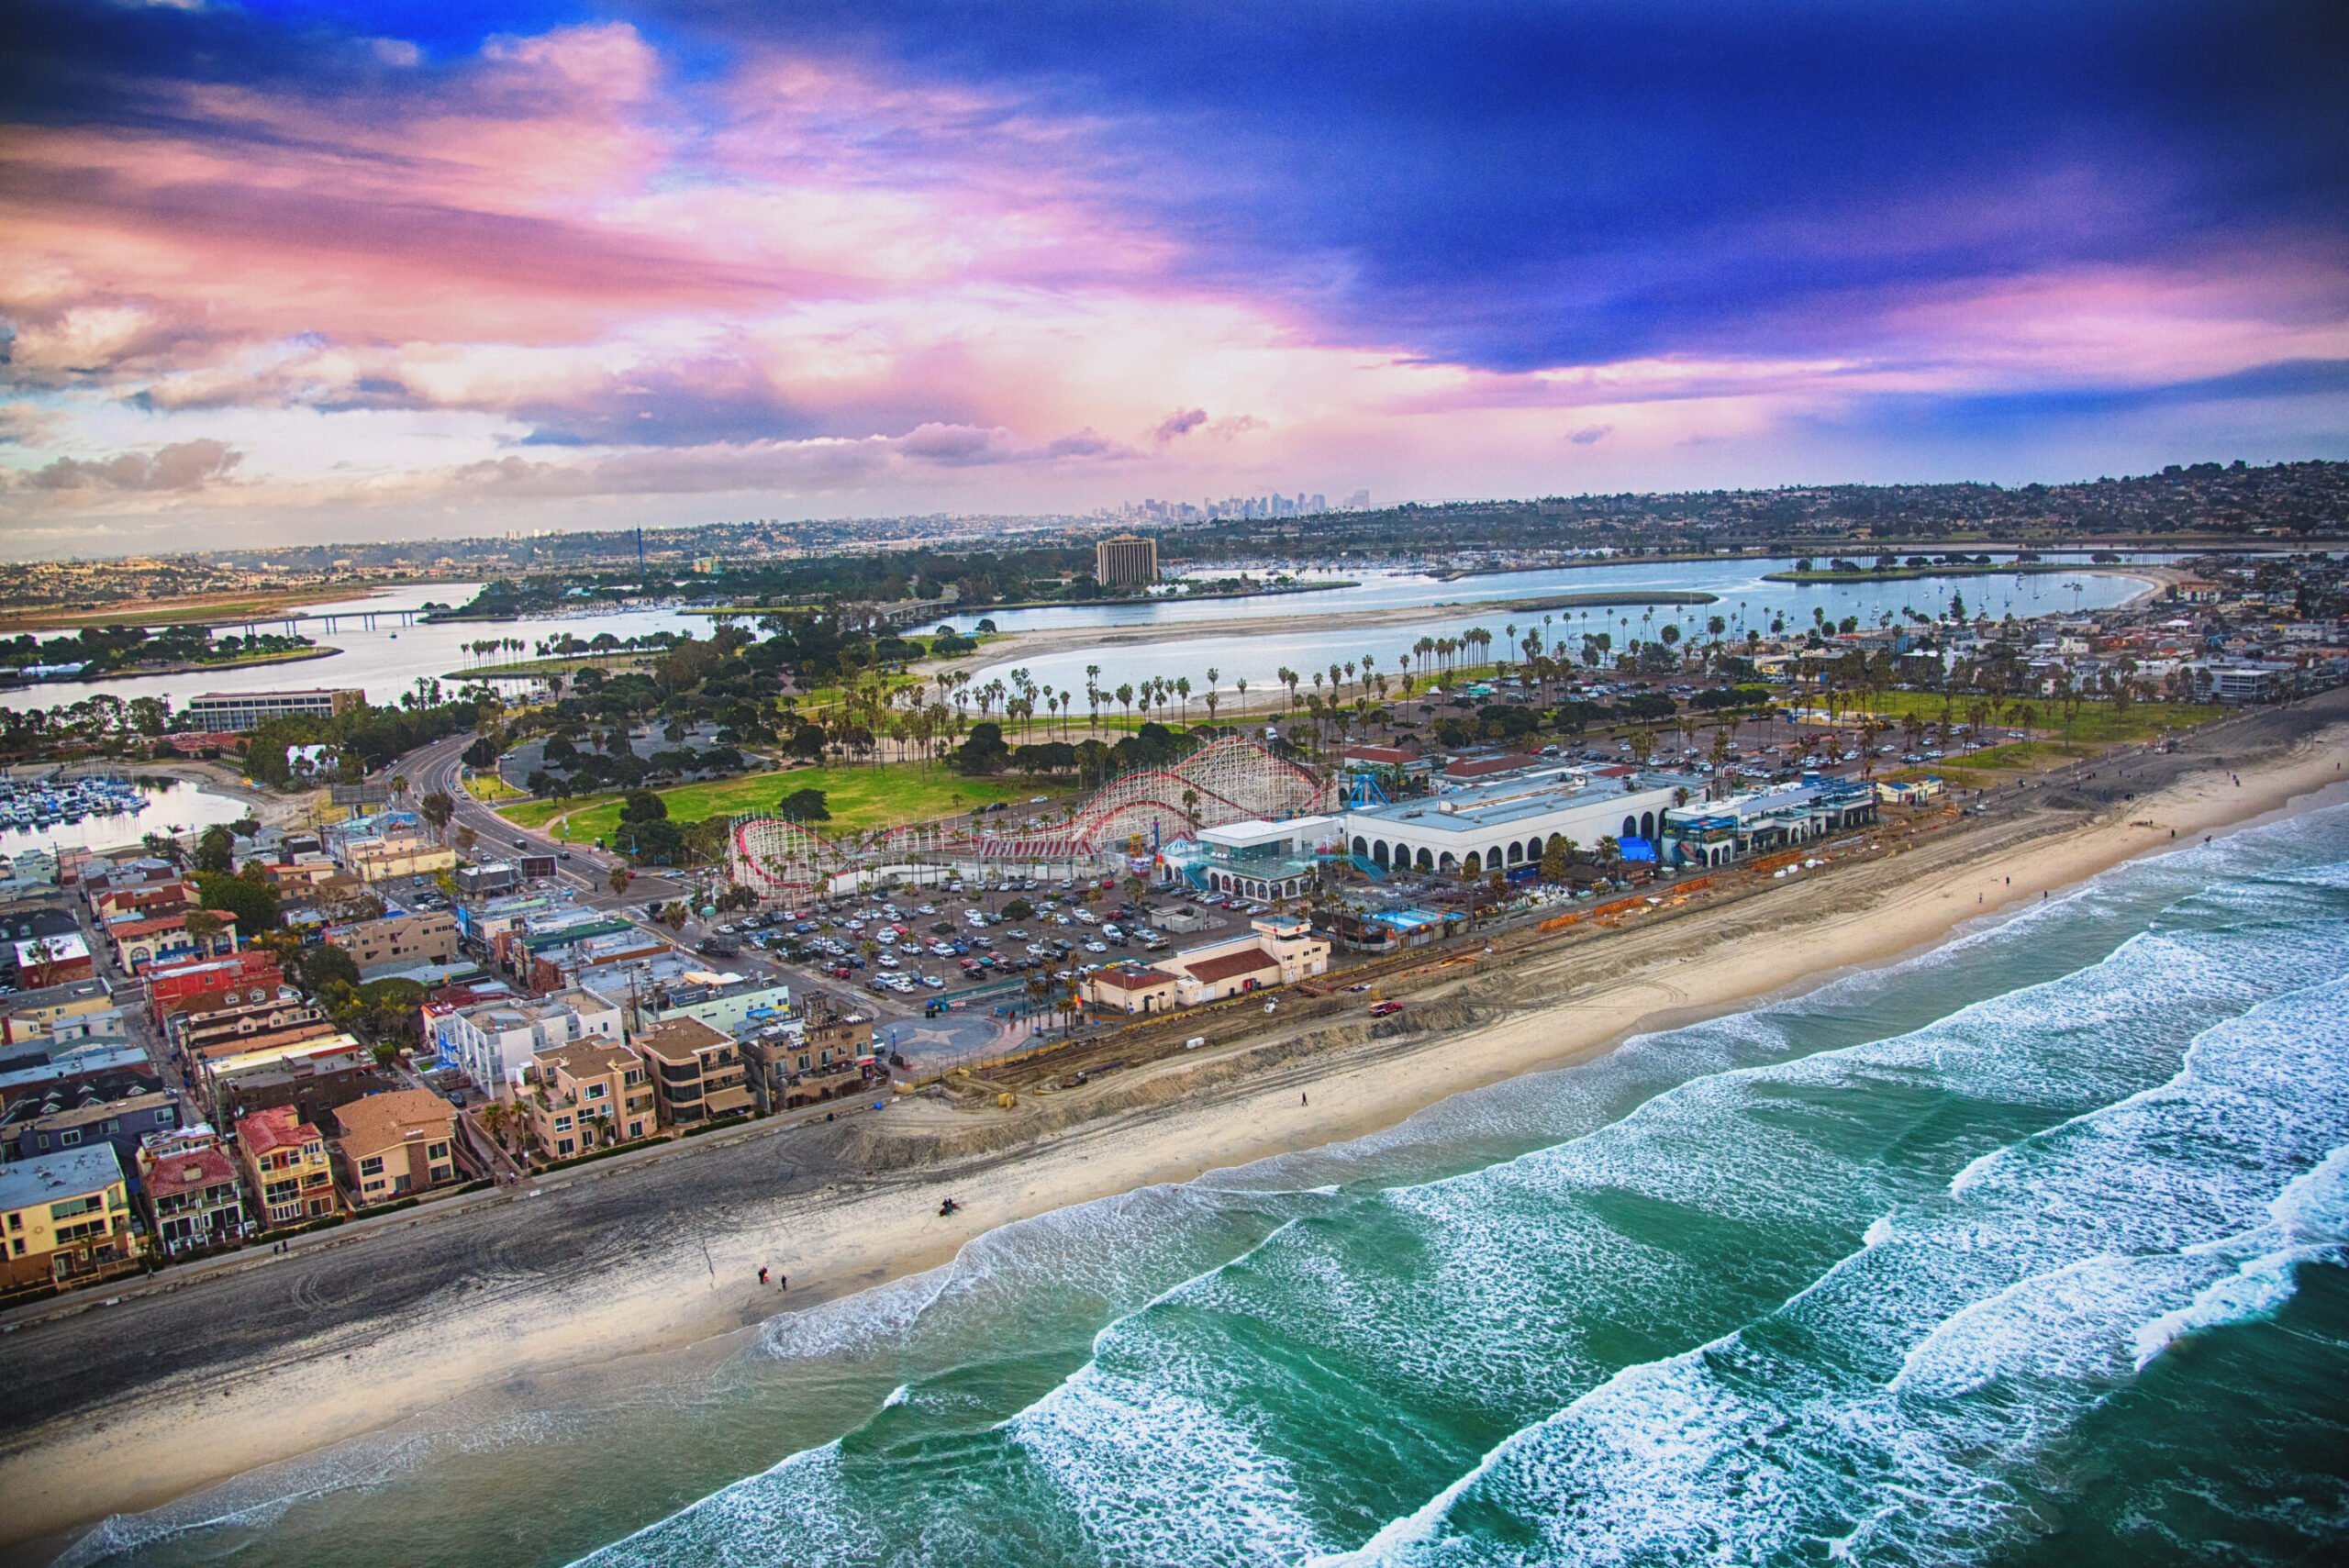 Mission Beach and Mission Bay in San Diego